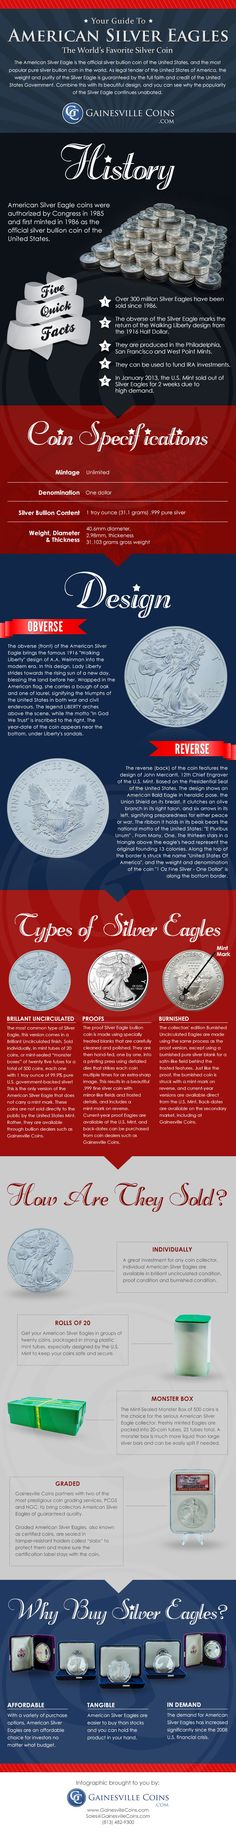 Gainesville Coins Spotlight of the American Silver Eagle!  http://www.gainesvillecoins.com/american-silver-eagles.aspx